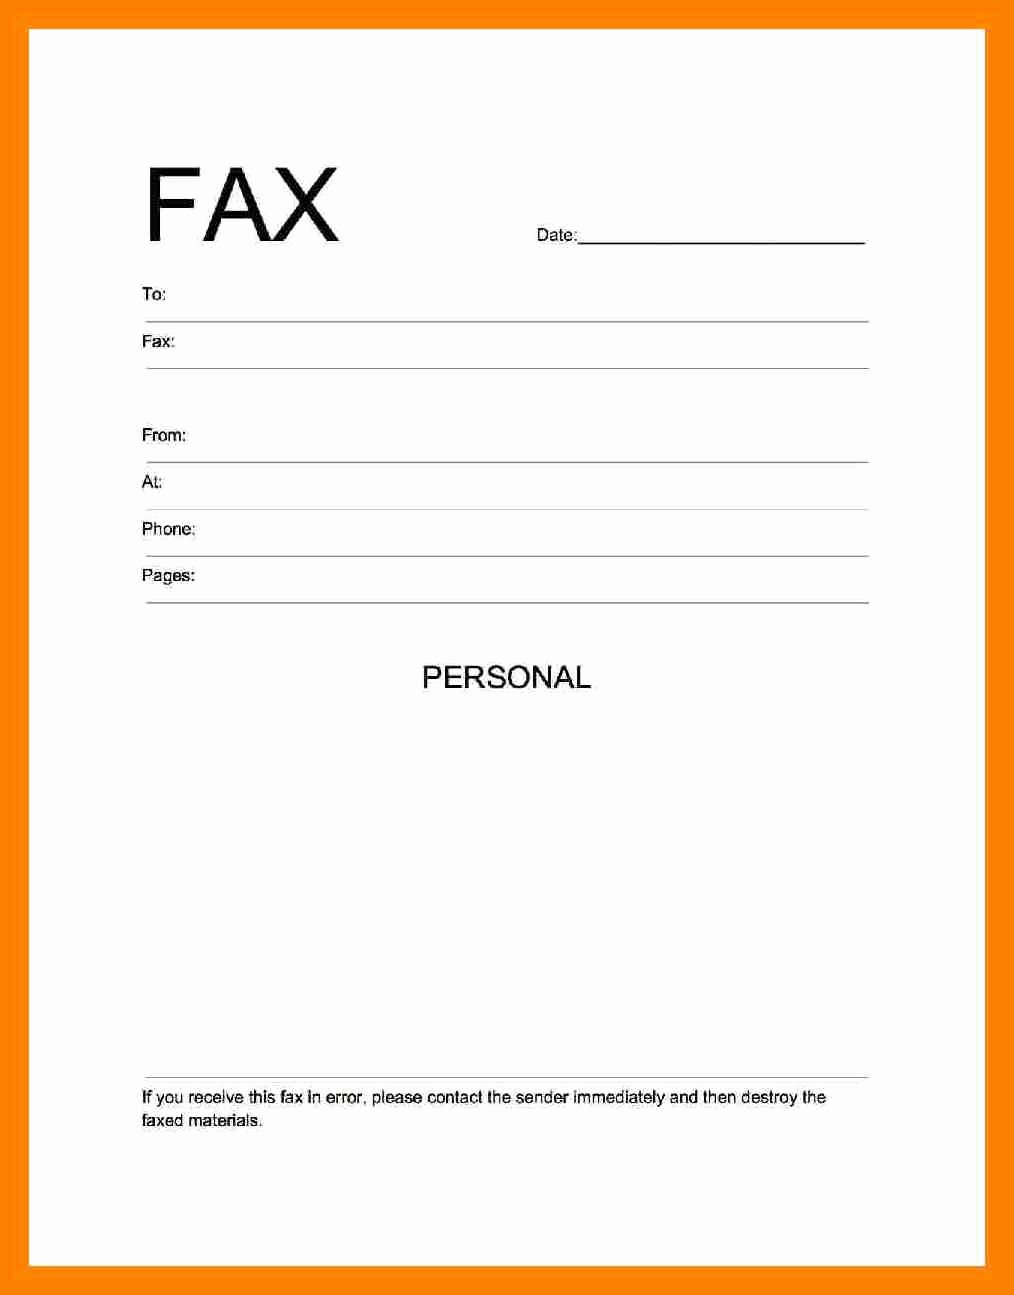 Fax Cover Sheet Pdf format Best Of Fax Cover Letter Pdf